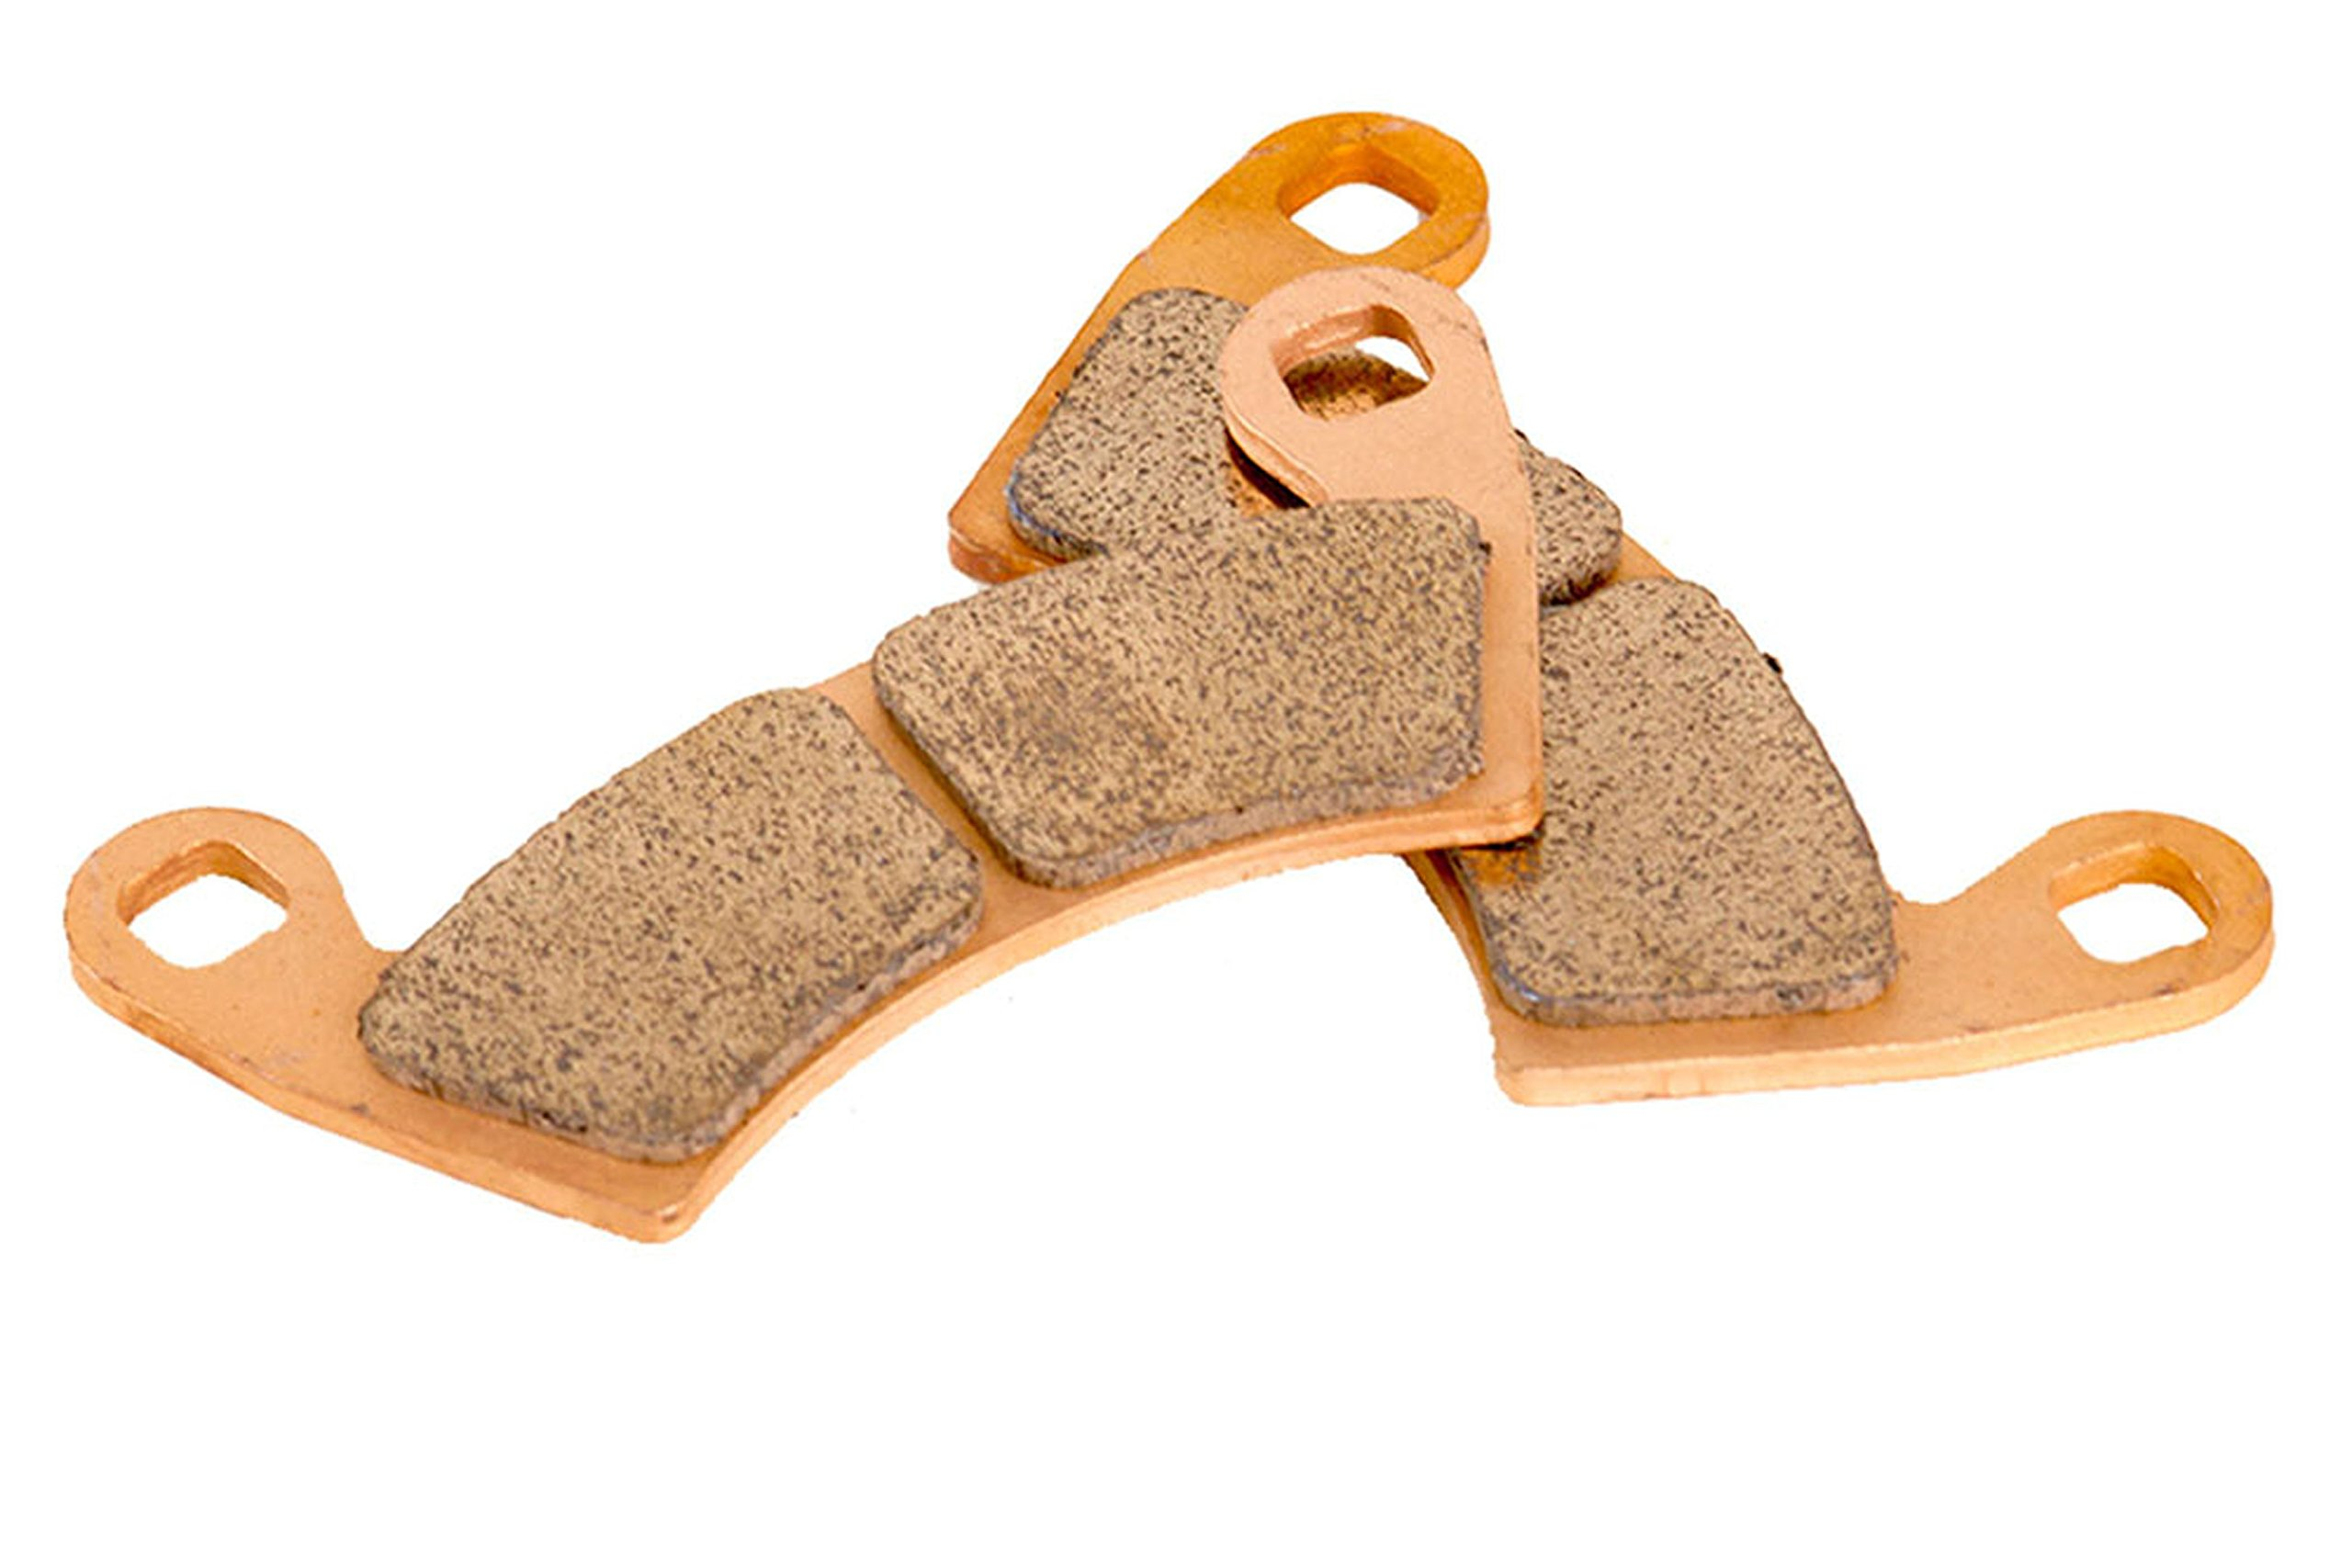 Brake Pads fit Polaris 1000 RZR S EPS 2016-2018 Front and Rear by Race-Driven